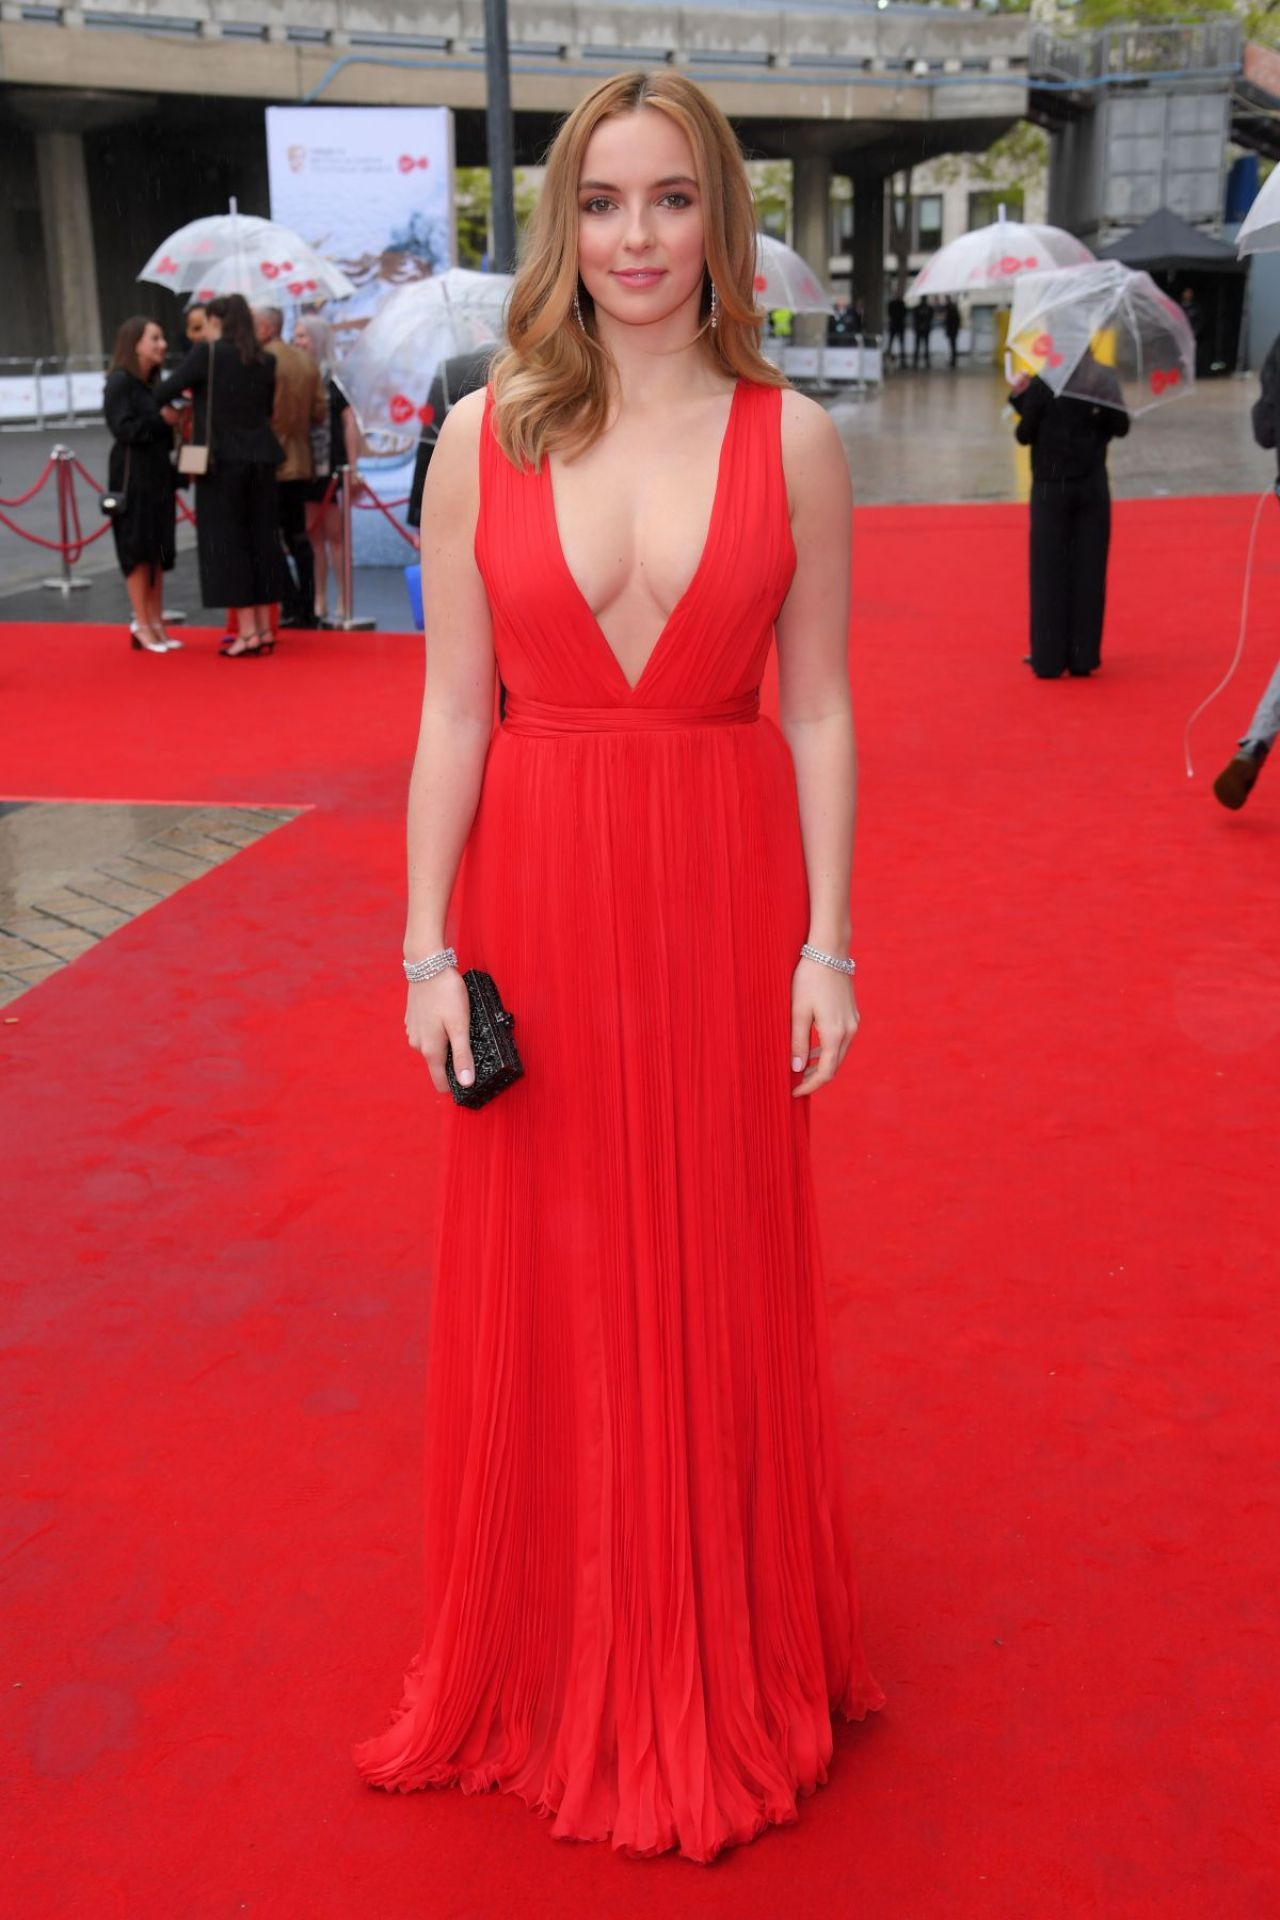 Jodie comer bafta television awards in london nude (42 photos), Hot Celebrity image